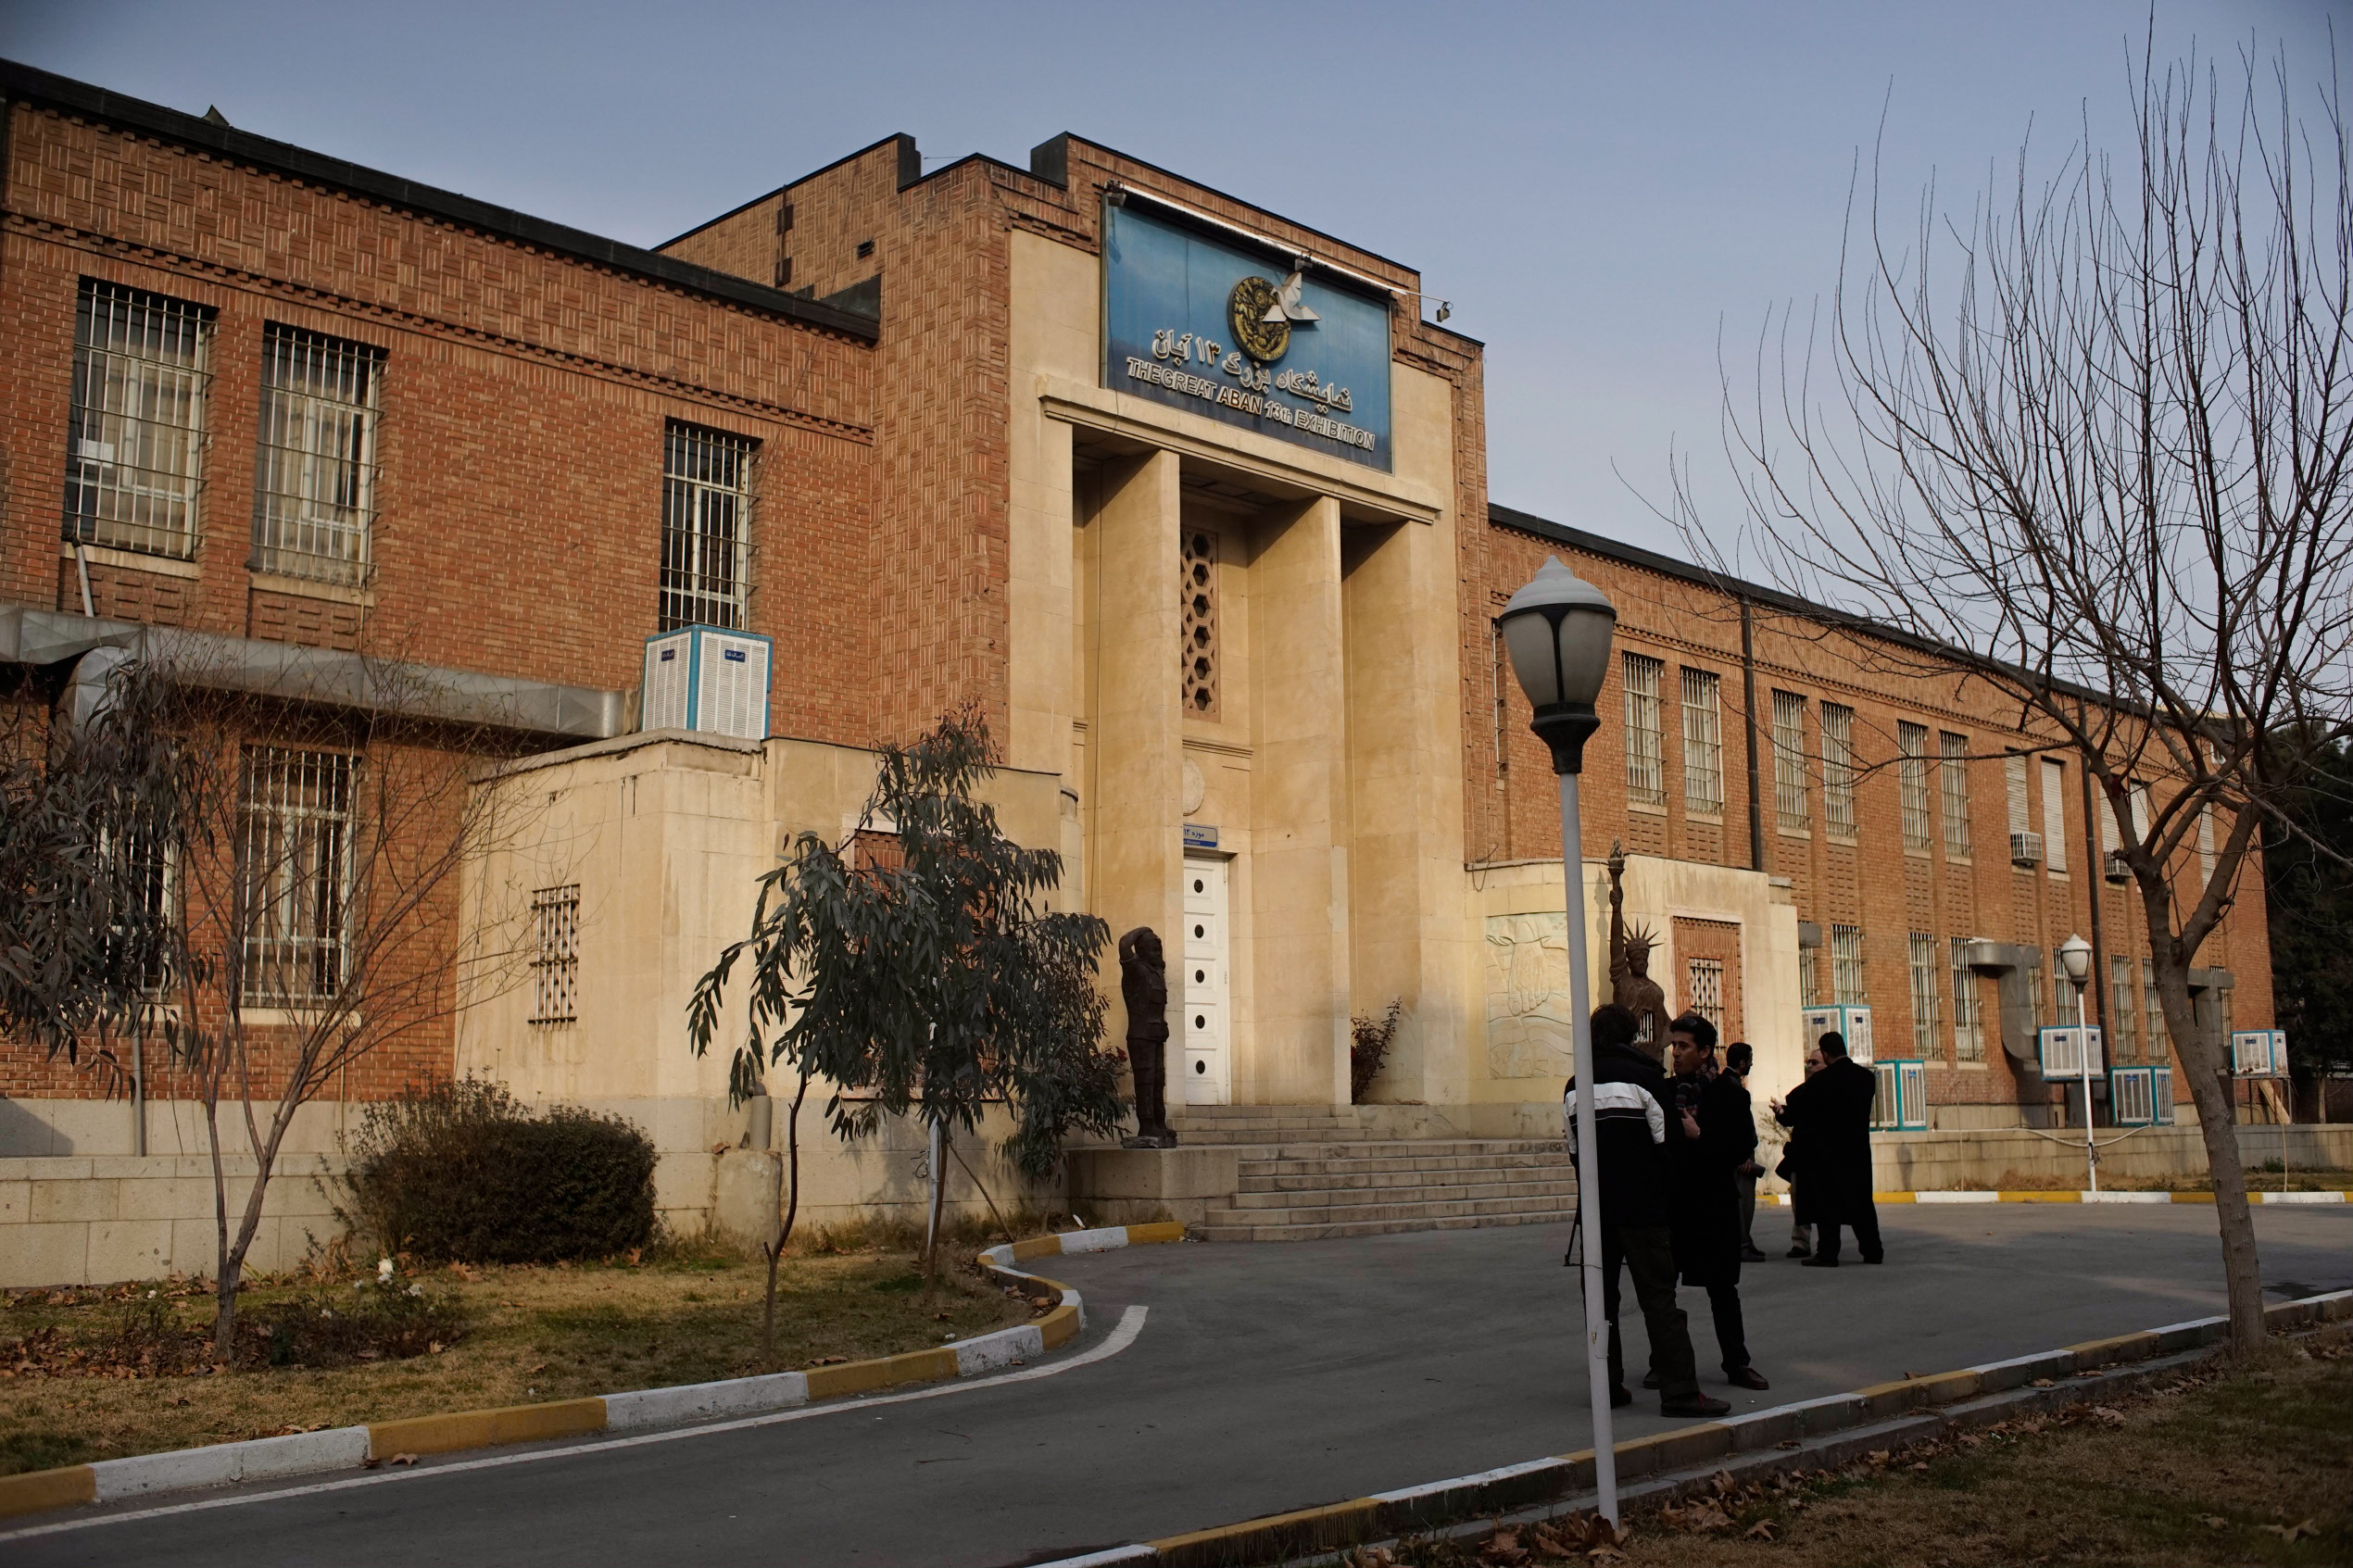 "Exterior of the former main U.S. embassy building in Iran.  Labeled the ""Den of Spies"" by the Iranians, this was the main building stormed by the hostage takers in 1979, as dramatized in the opening of the 2012 Ben Affleck film ""Argo.""  This was also where the hostages were initially kept captive until the failed rescue attempt prompted the Iranians to separate the hostages at different locations. The building now houses an amateurish propaganda museum that's rarely open to the public. The rest of the embassy compound is reportedly used to train members of Iran's Revolutionary Guard."